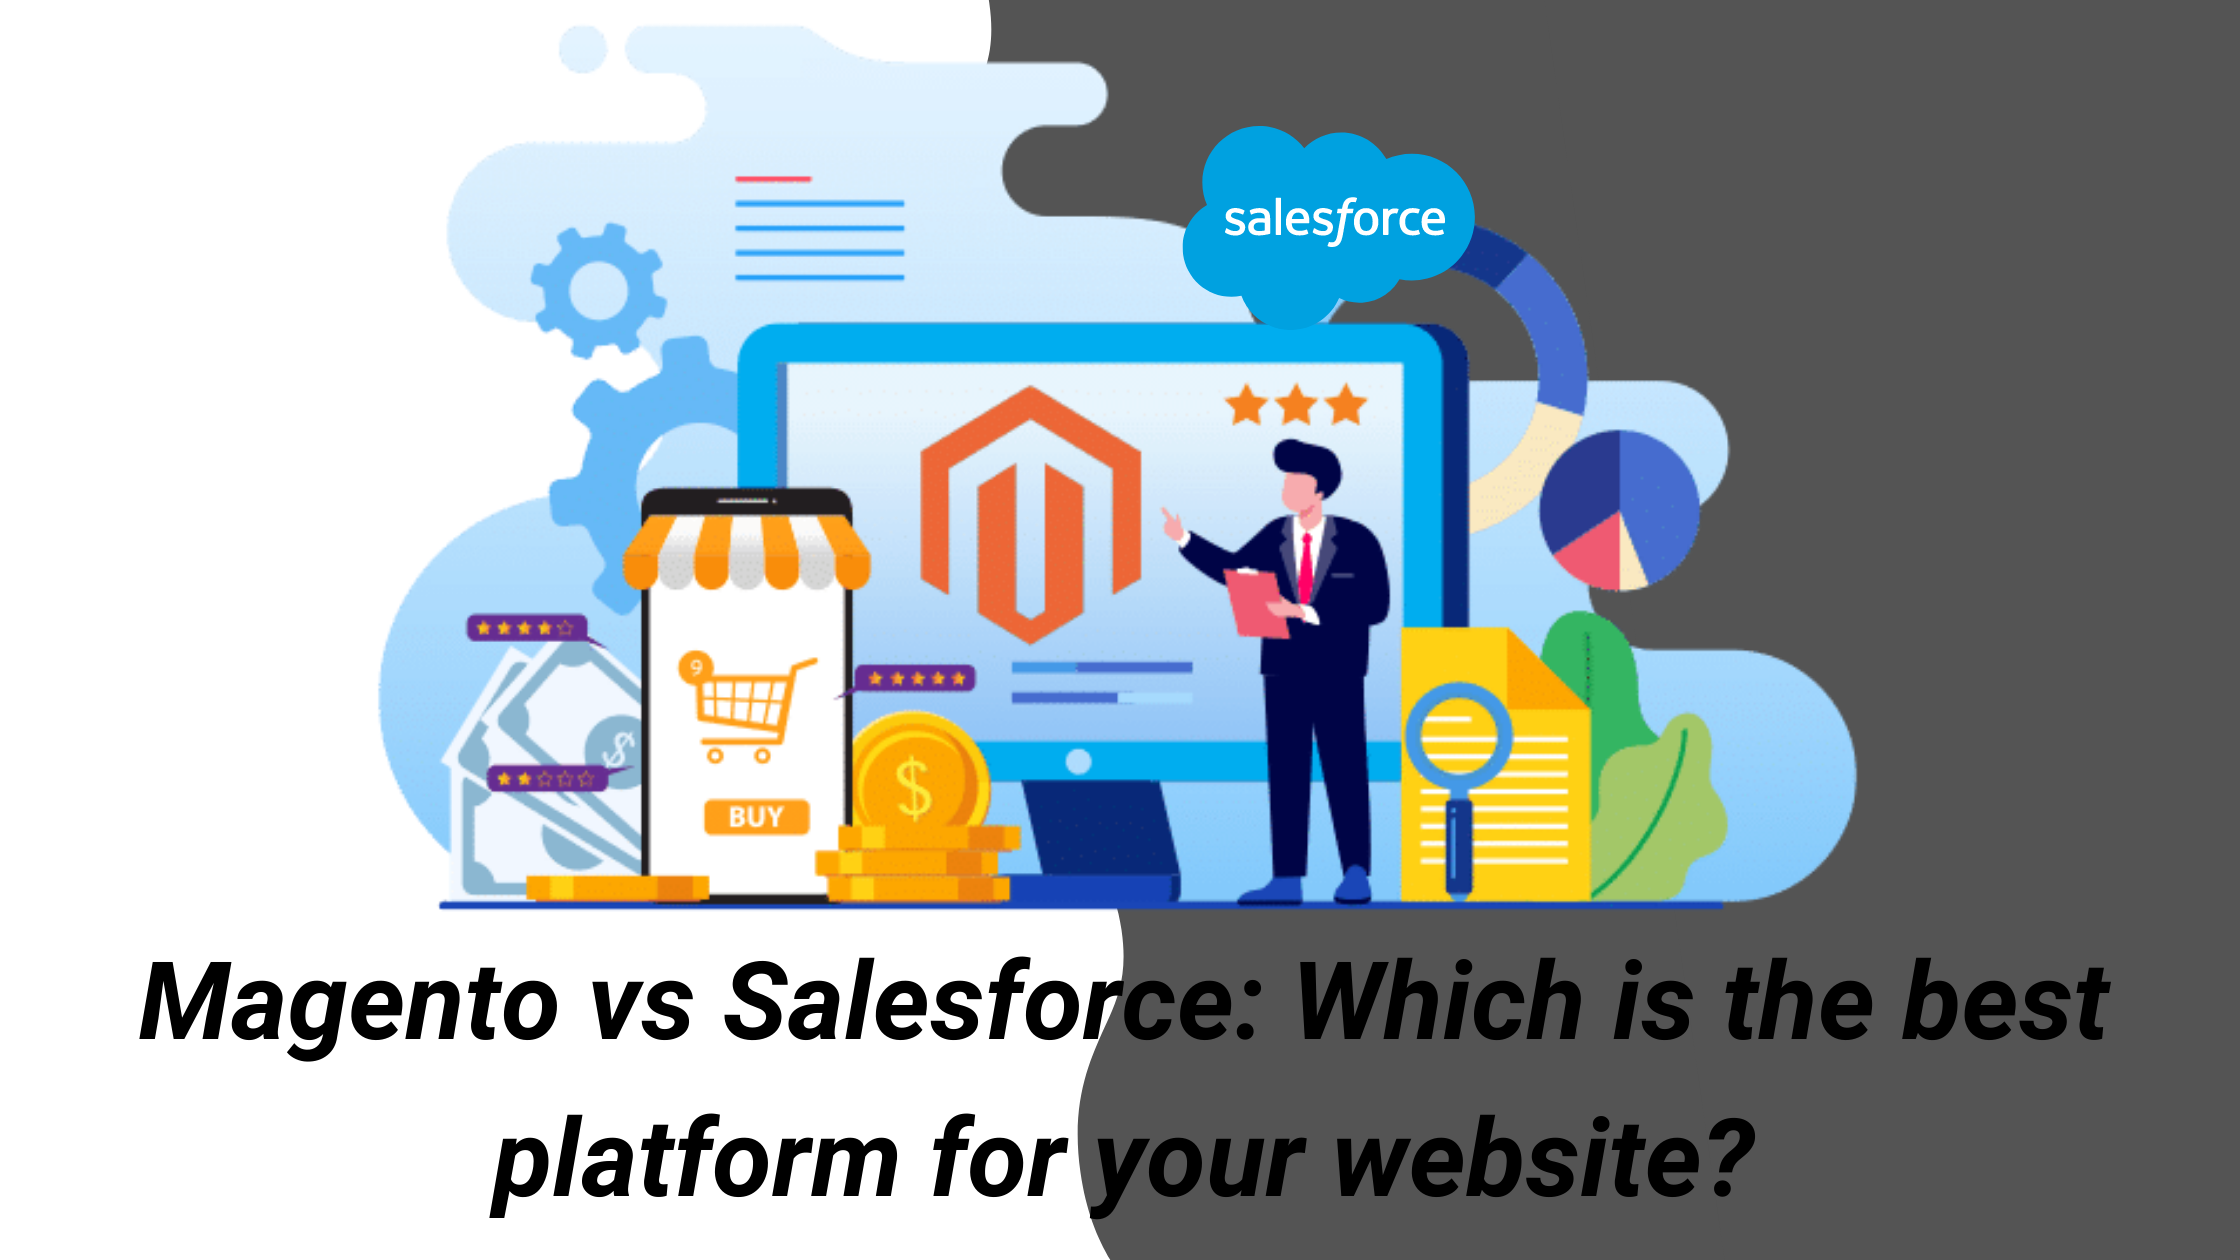 Magento vs Salesforce: Which is the best platform for your website?